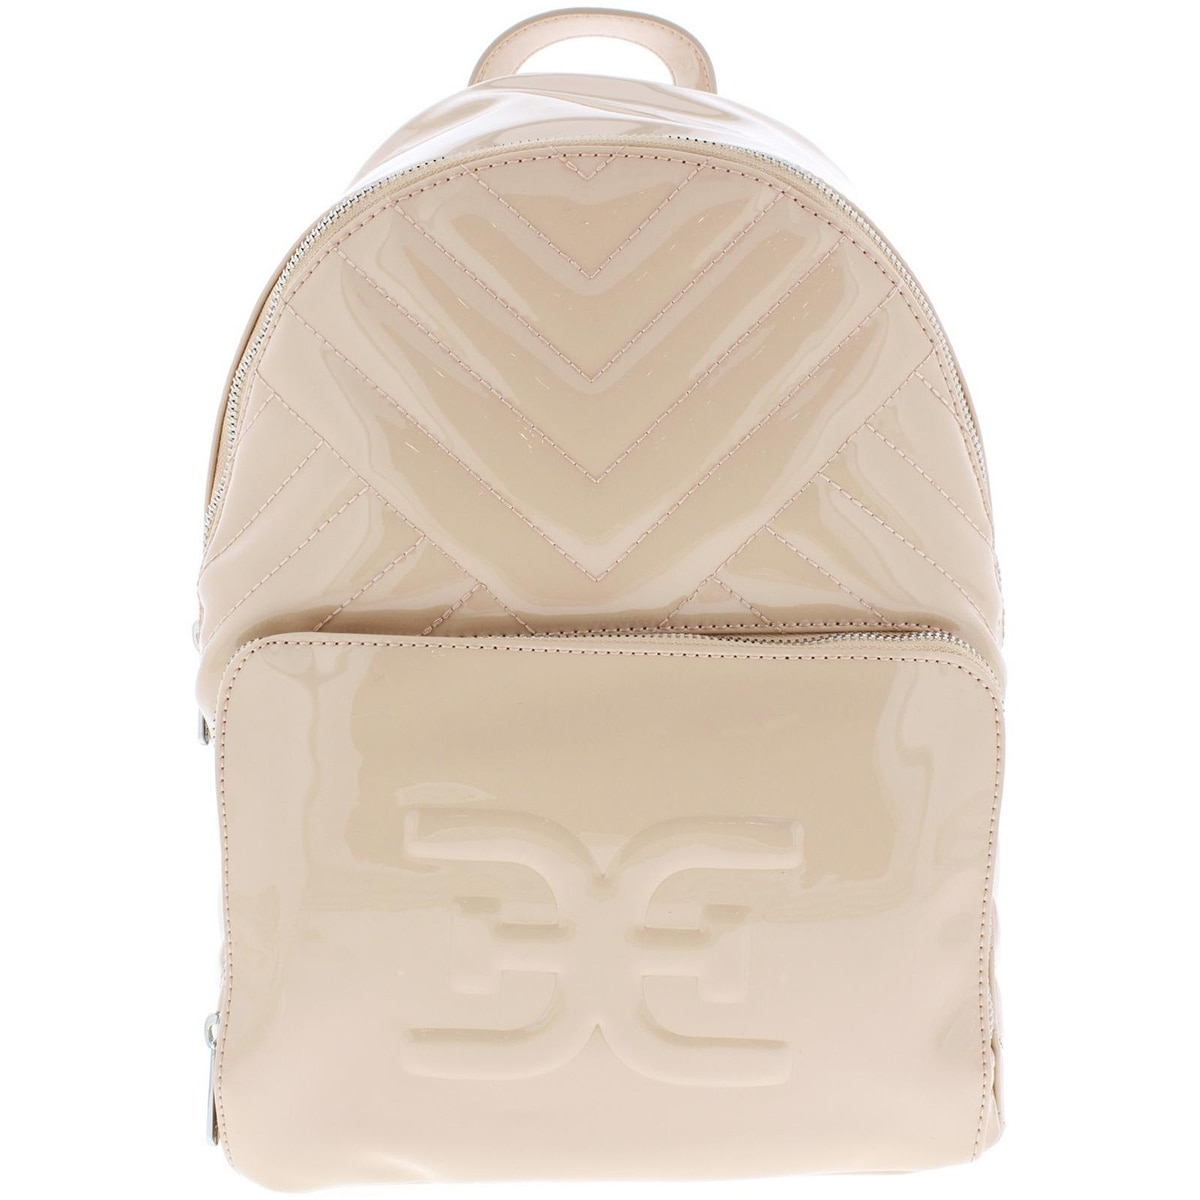 495e80aab6 Shop Sam Edelman Womens Taja Backpack Embossed Mini - Small - Free Shipping  On Orders Over  45 - Overstock - 24020192